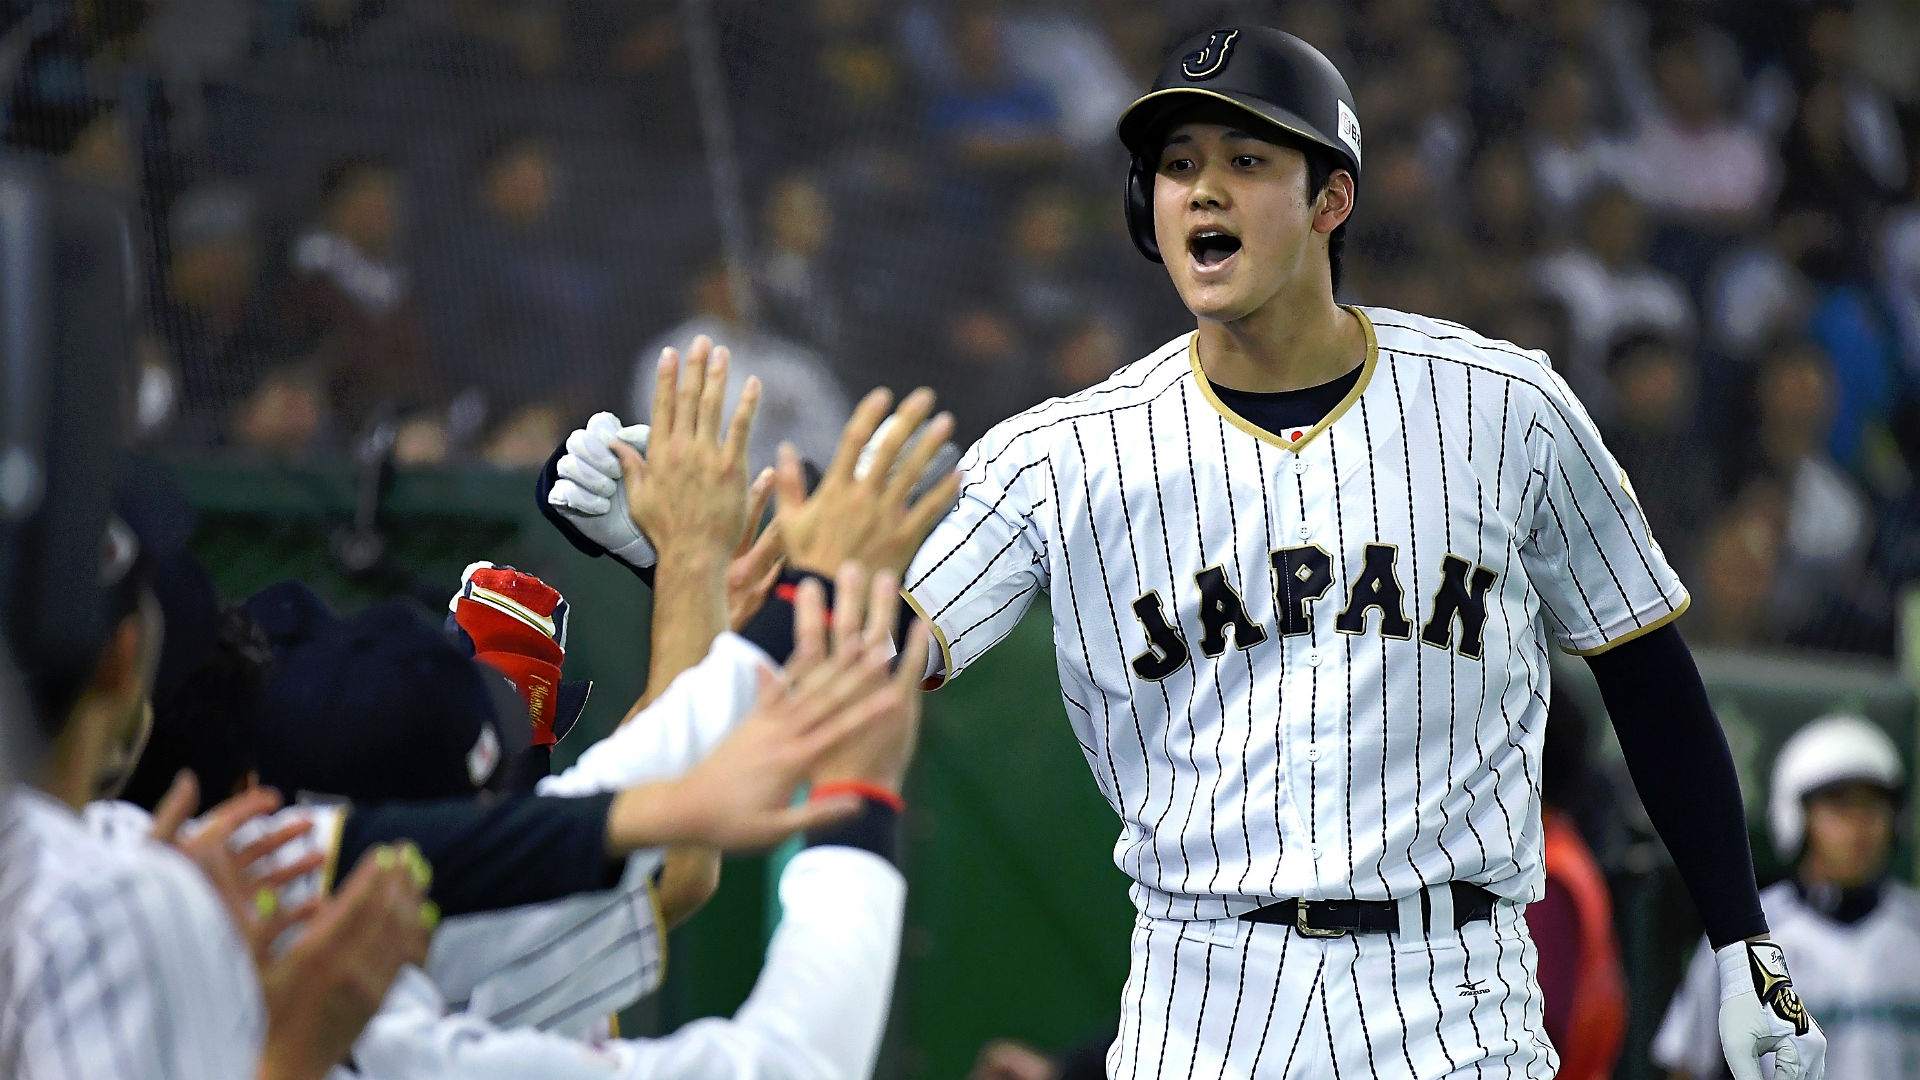 MLB, union reach posting agreement to clear way for Shohei Ohtani